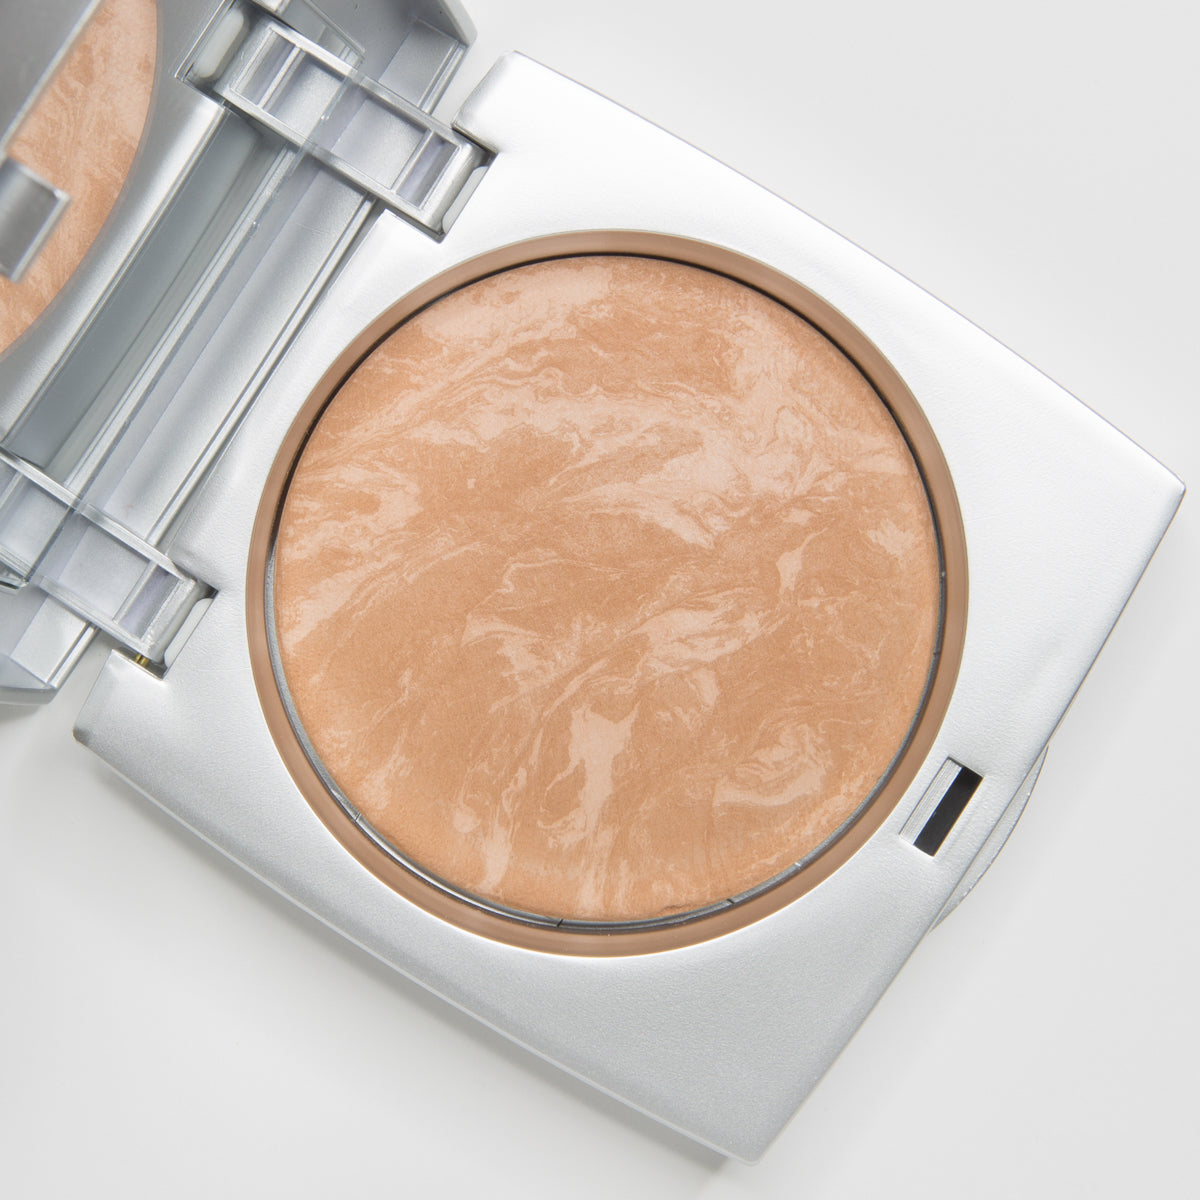 Tea Mineral Foundation